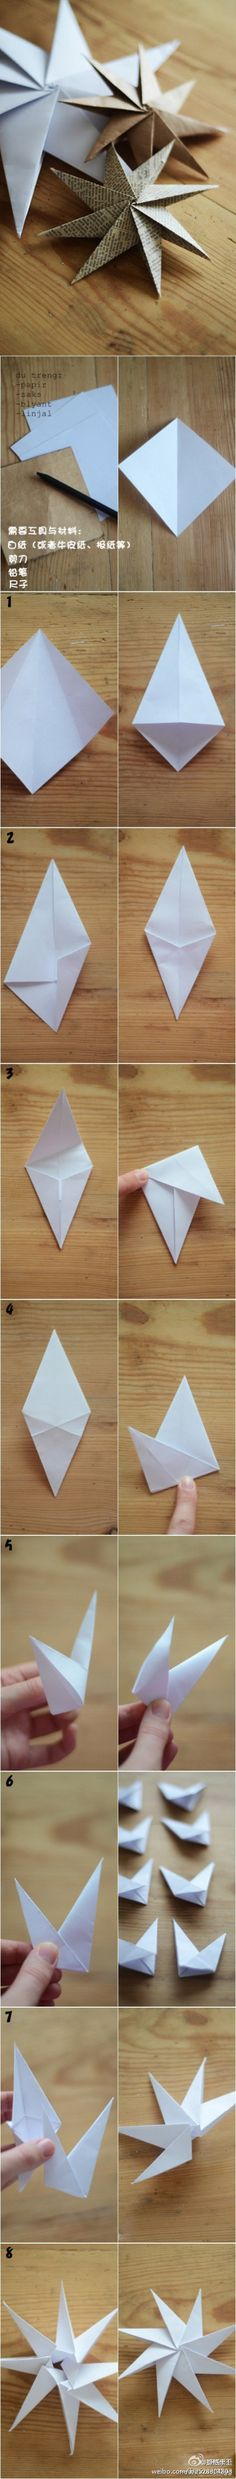 How to make a Paper star